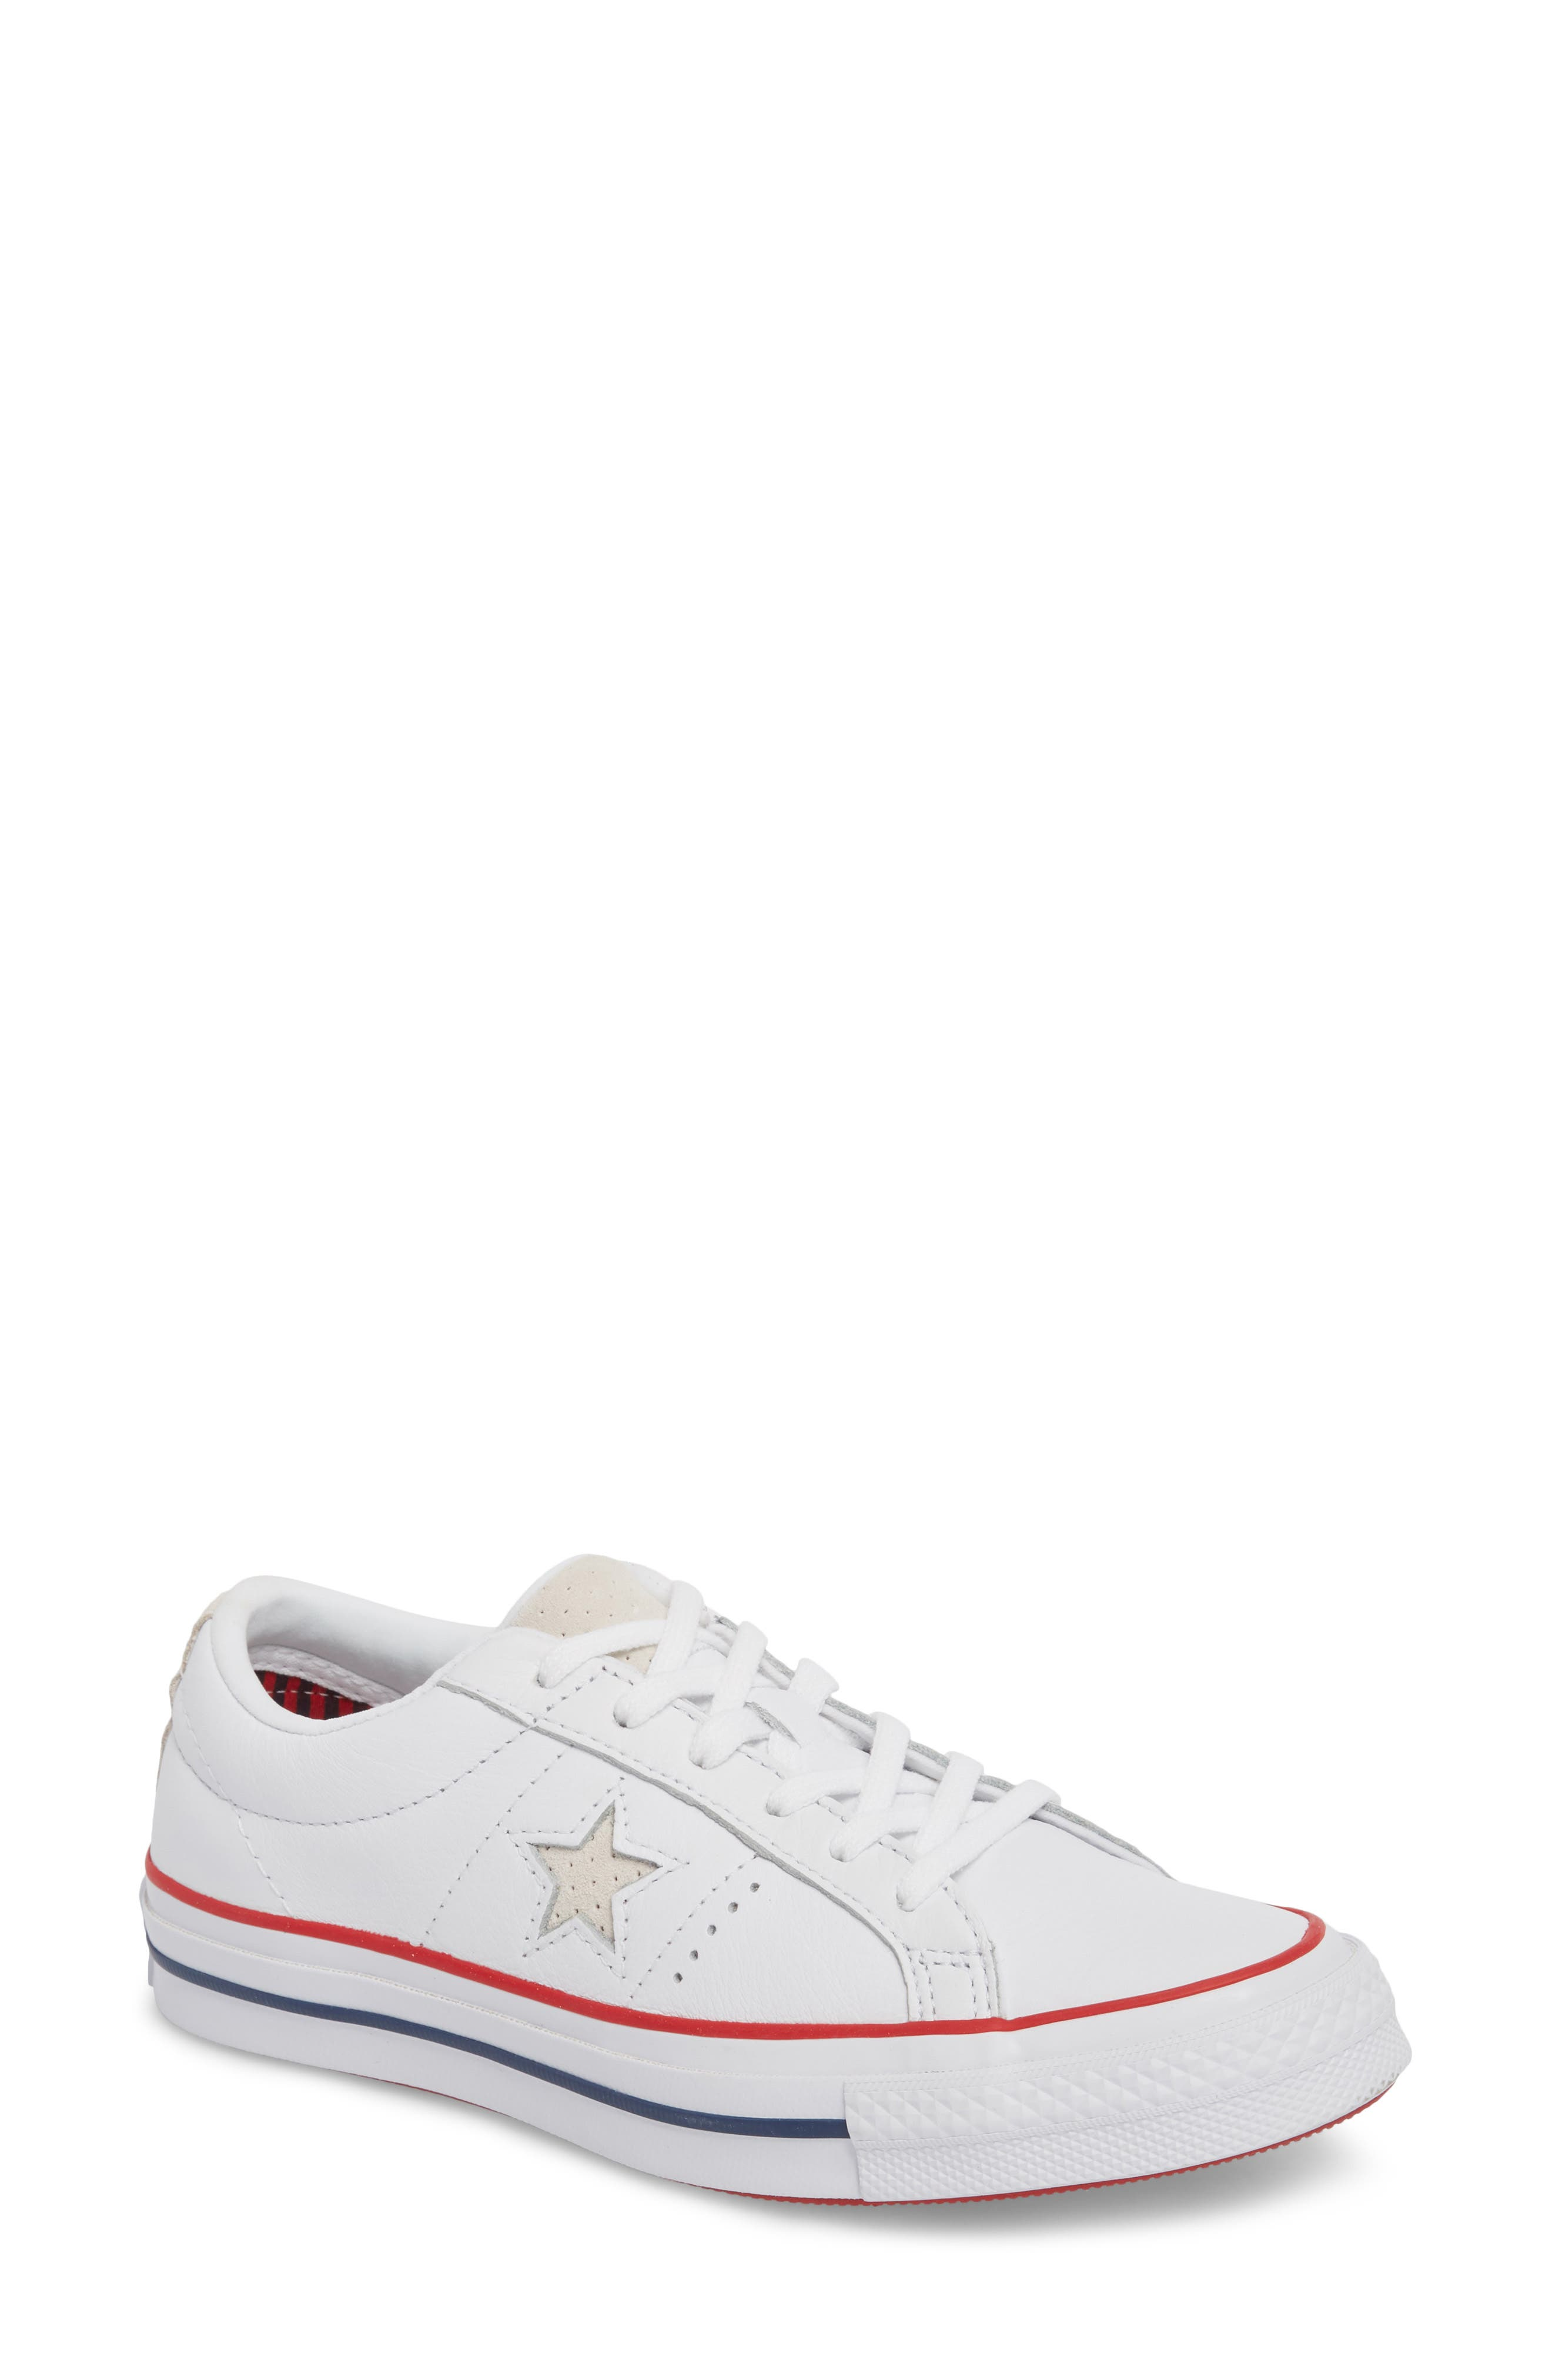 One Star Sneaker,                             Main thumbnail 1, color,                             White/ Gym Red